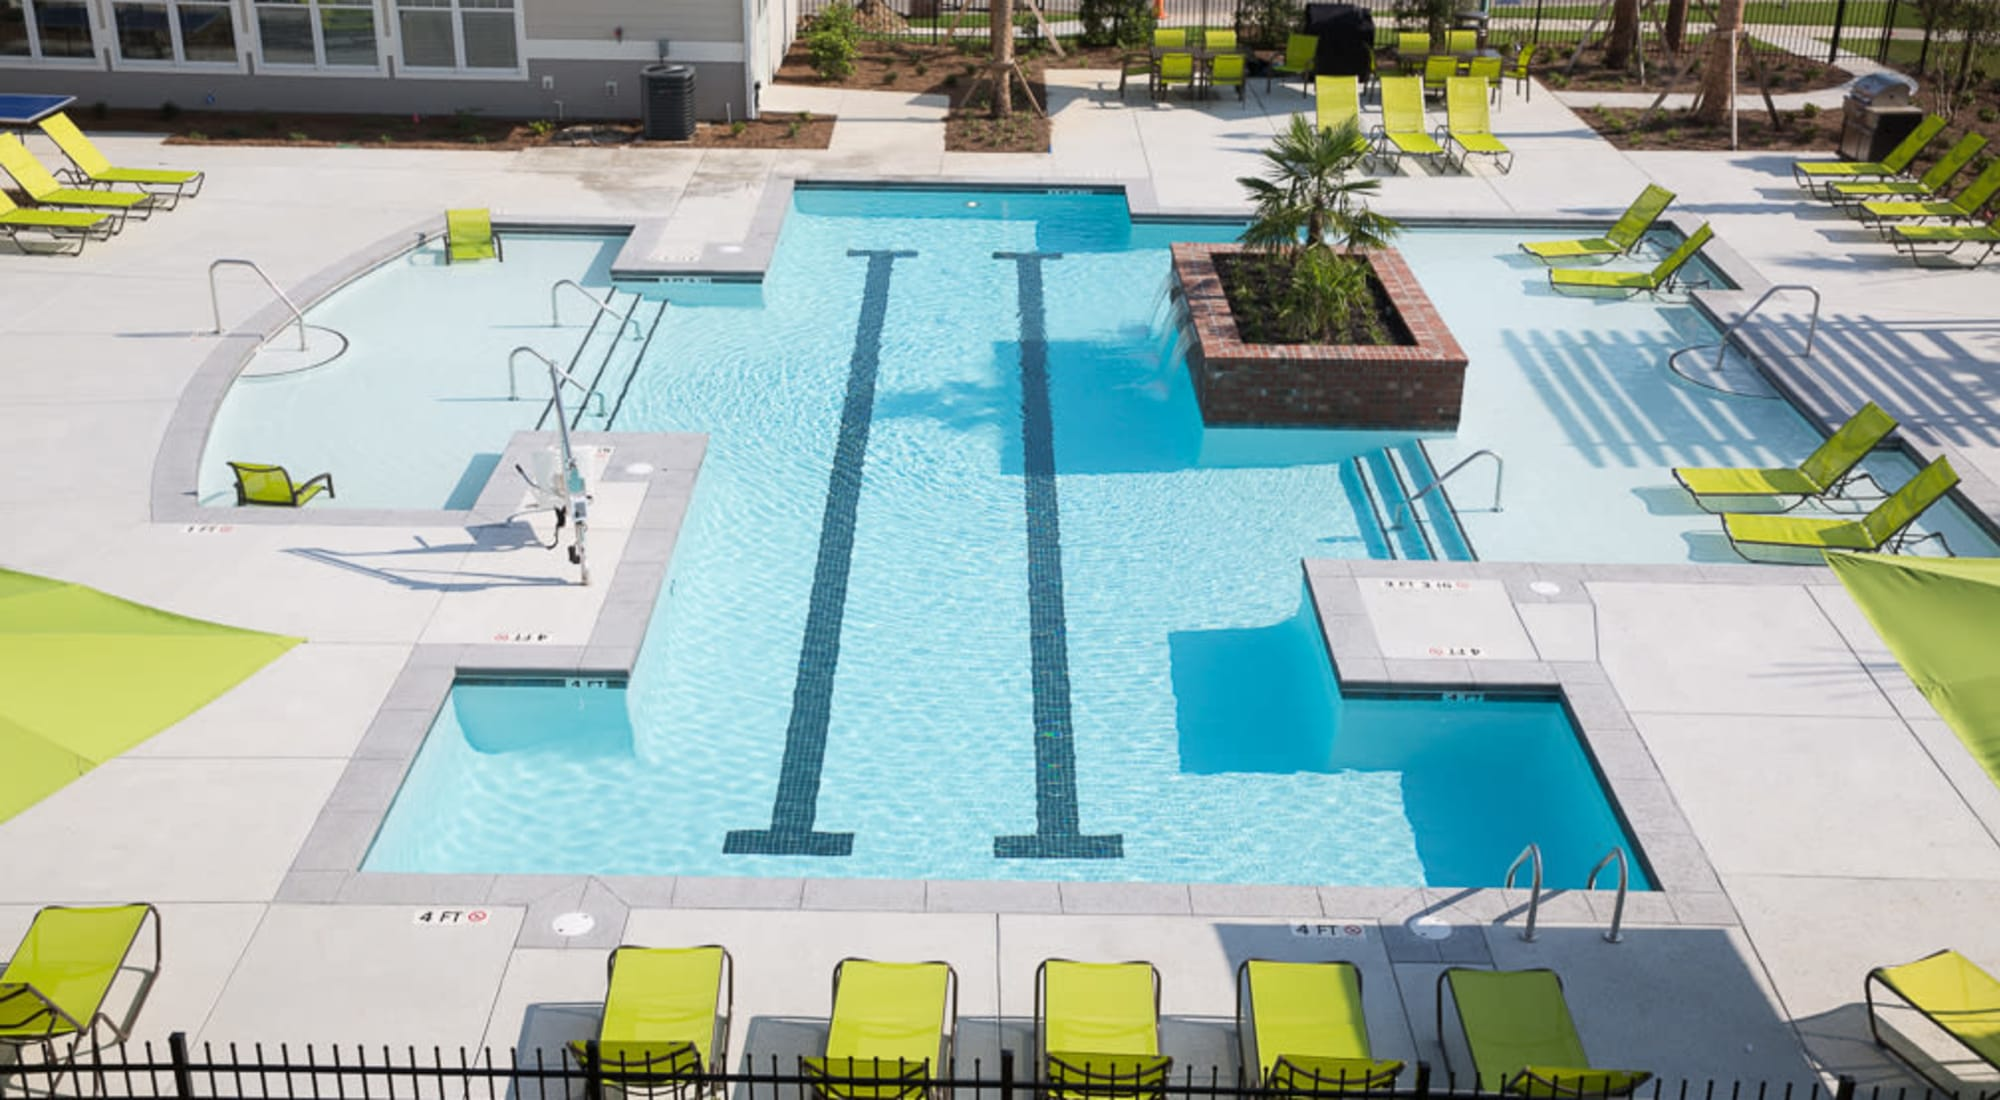 Apartments in Ladson, South Carolina at Ansley Commons Apartment Homes